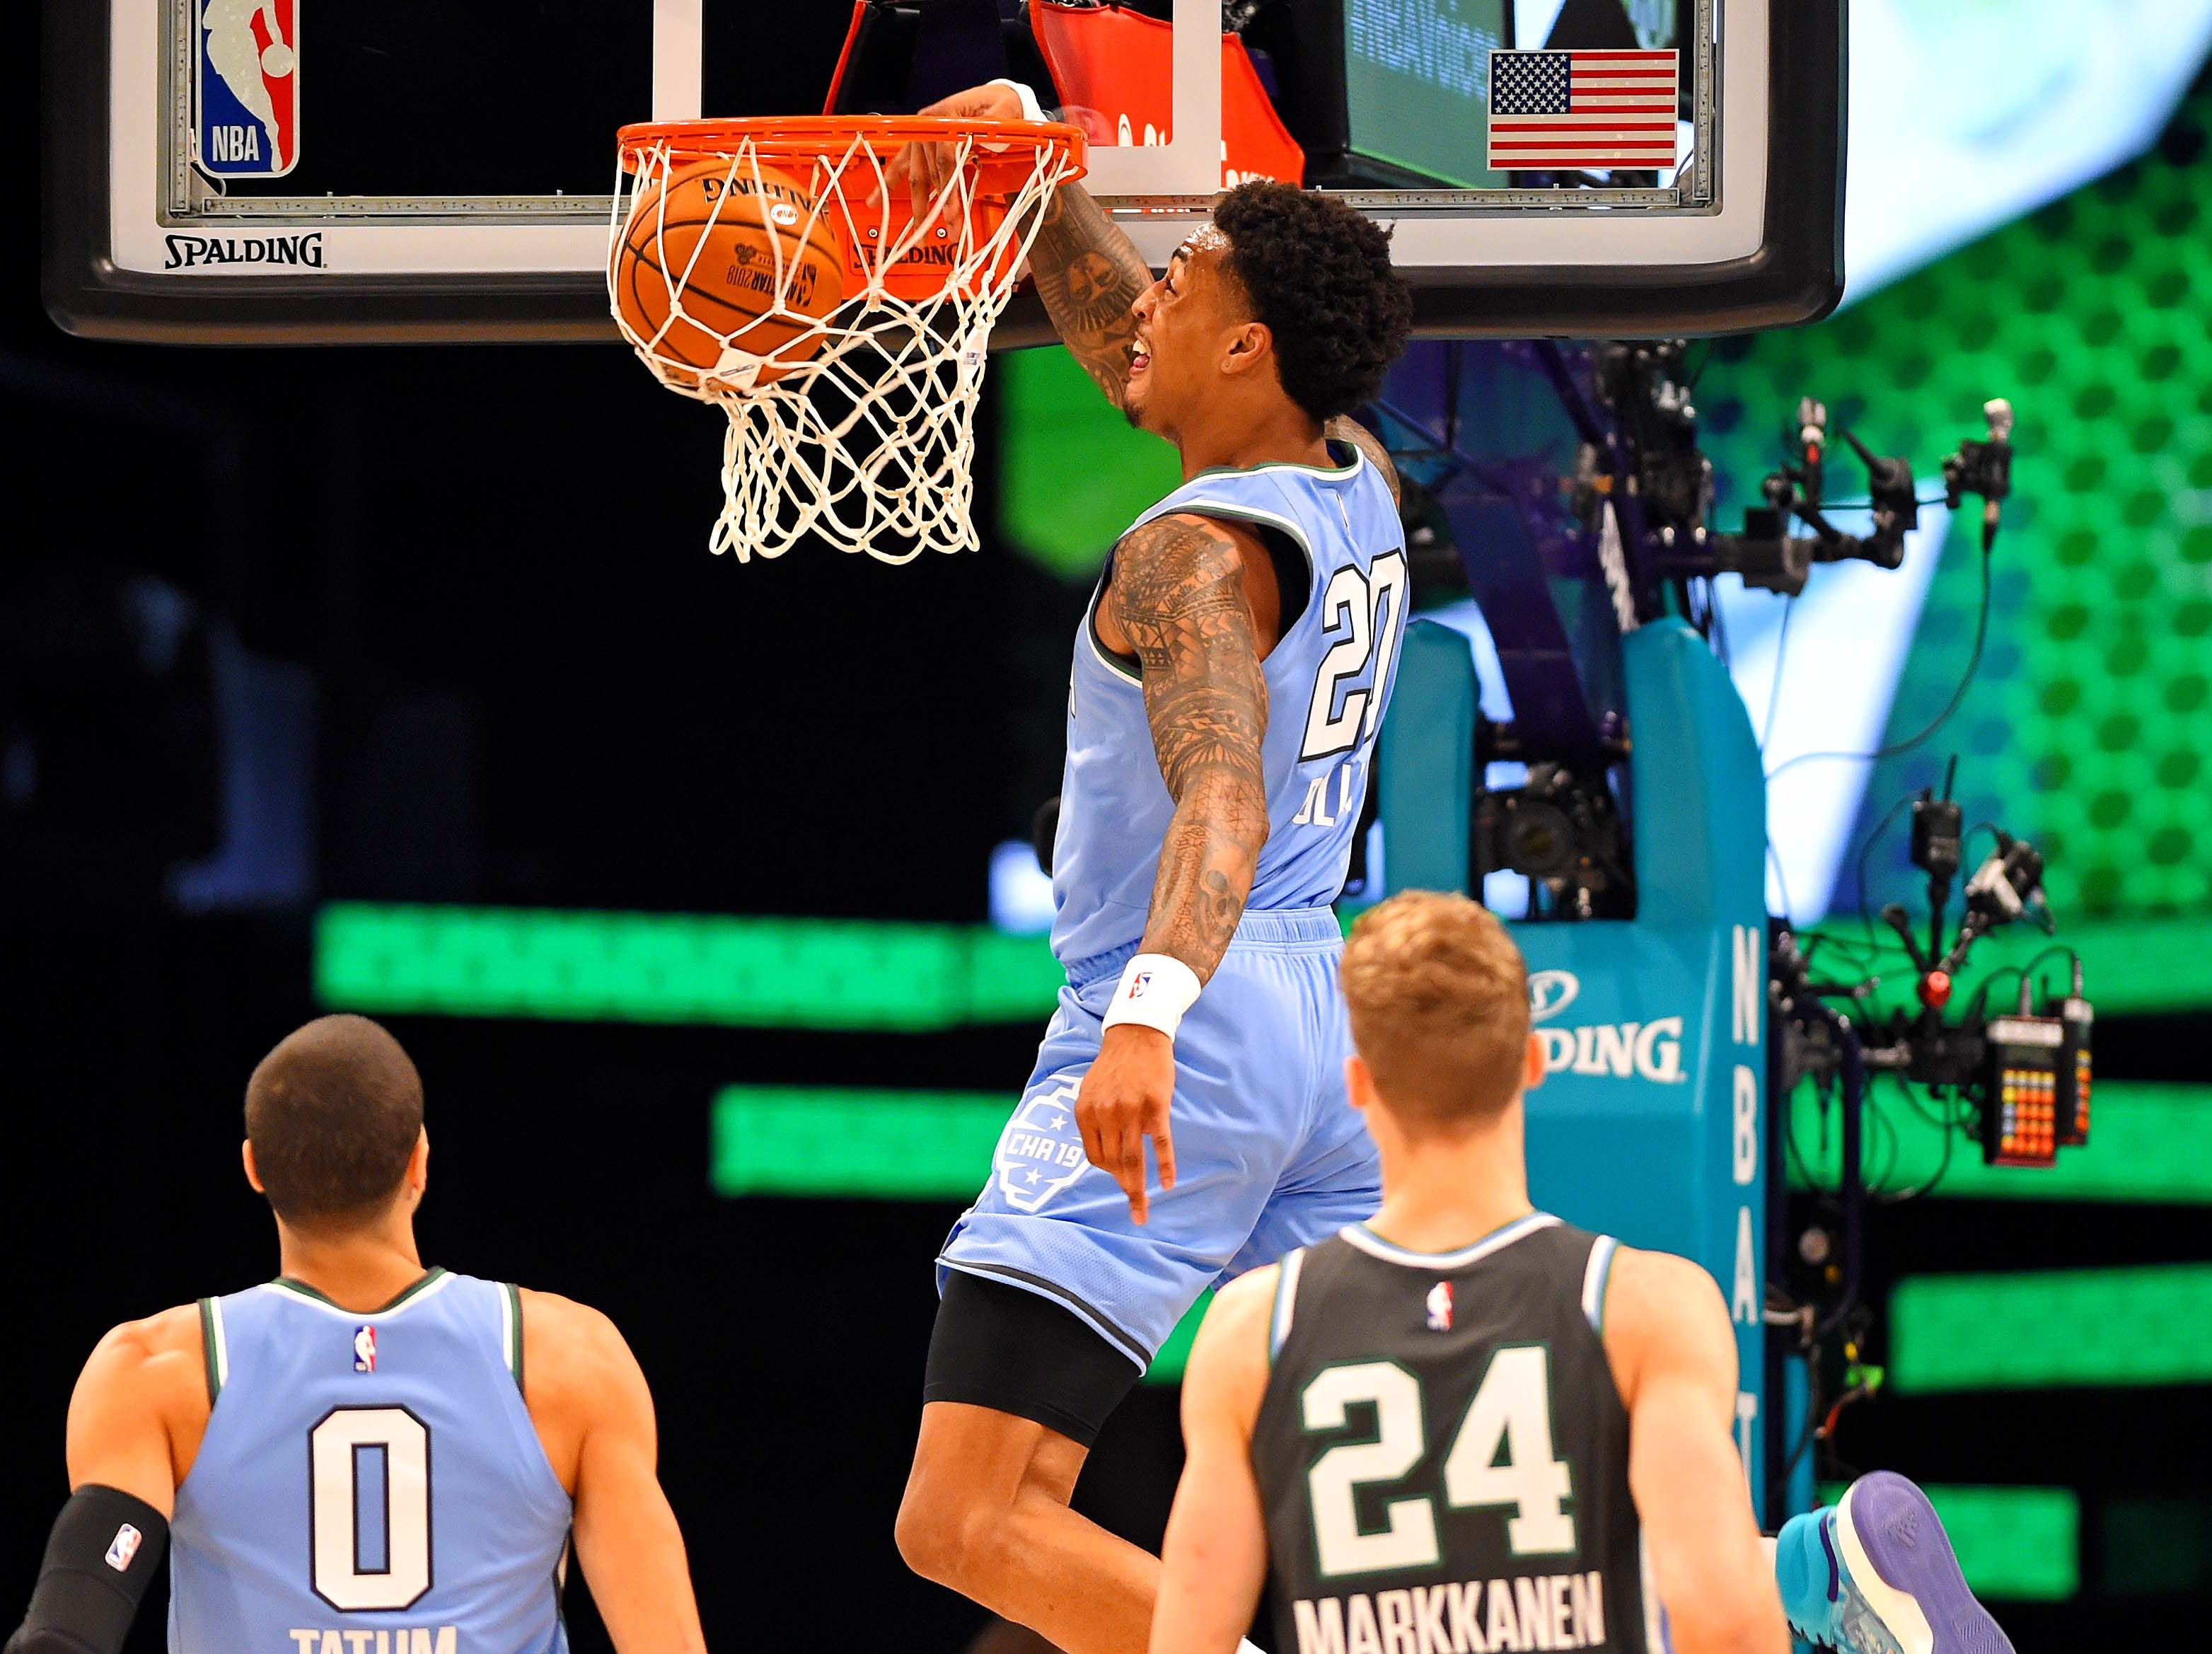 John Collins of the Atlanta Hawks dunks the ball against the World Team during the All-Star Rising Stars game.